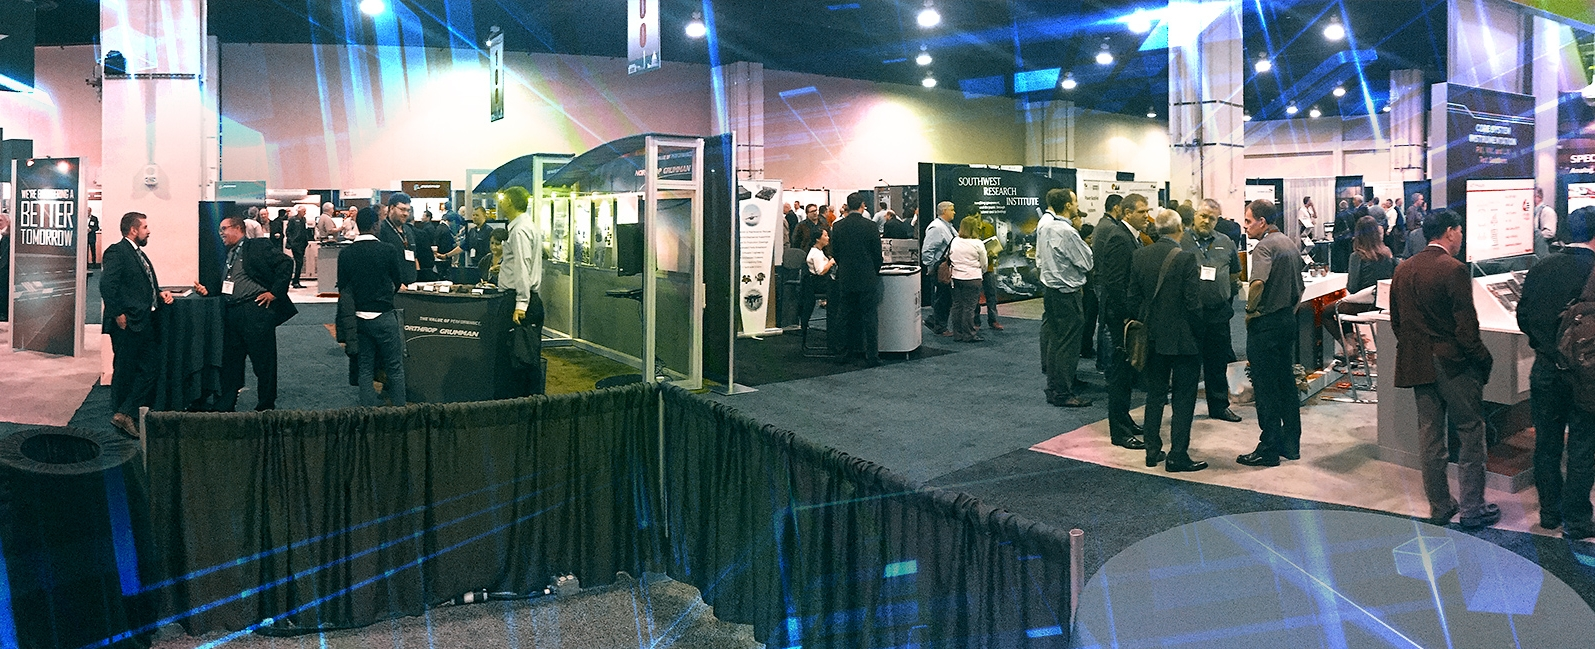 AUTOTESTCON 2015 Exhibit Hall